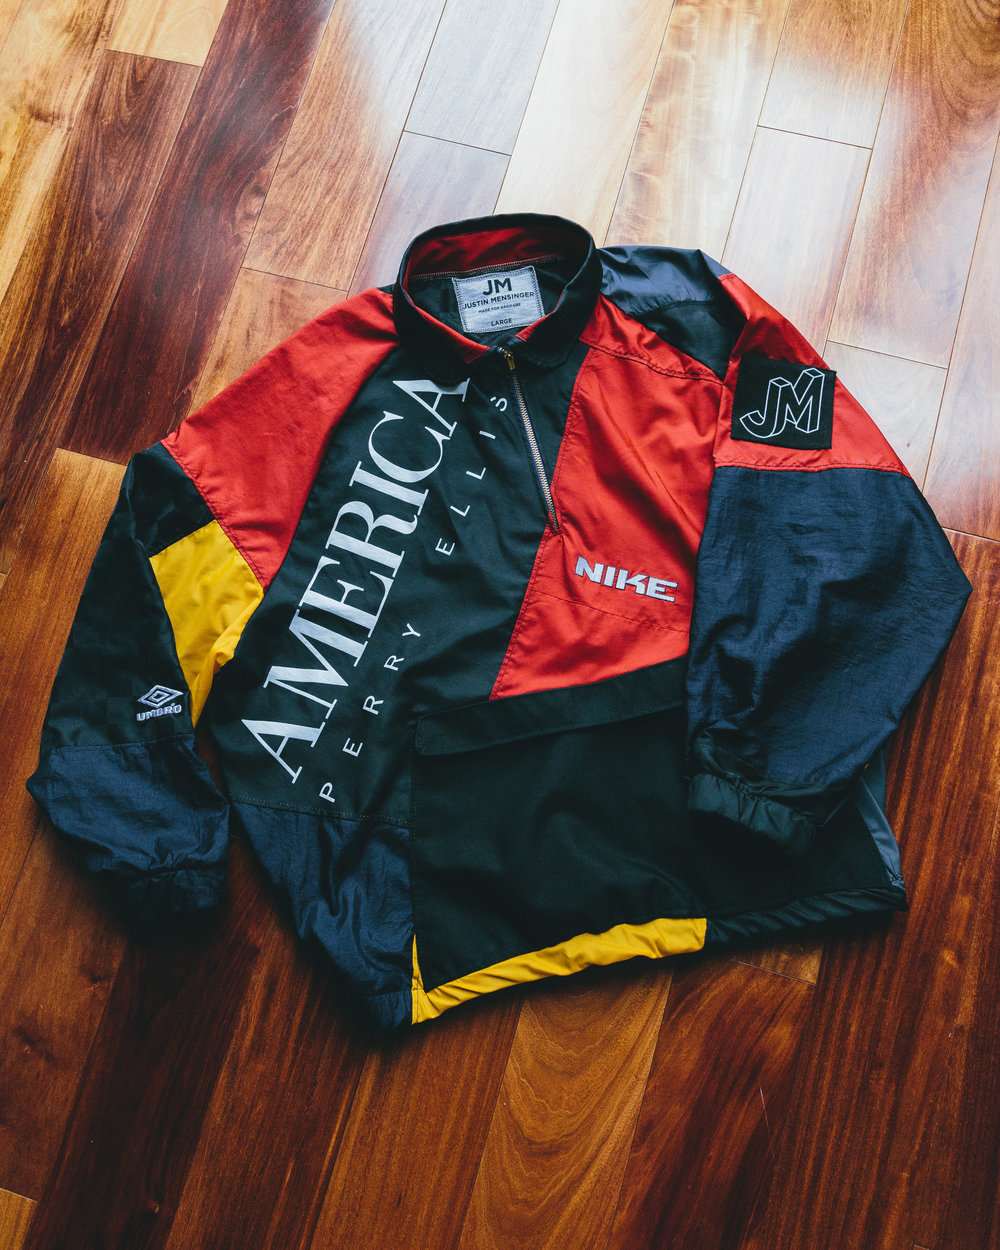 Americana Windbreaker - Pullover 1/4 zip windbreaker made from vintage soccer shorts, track pants, and even another vintage jacket I had found that needed a new life as it had a whole in it.